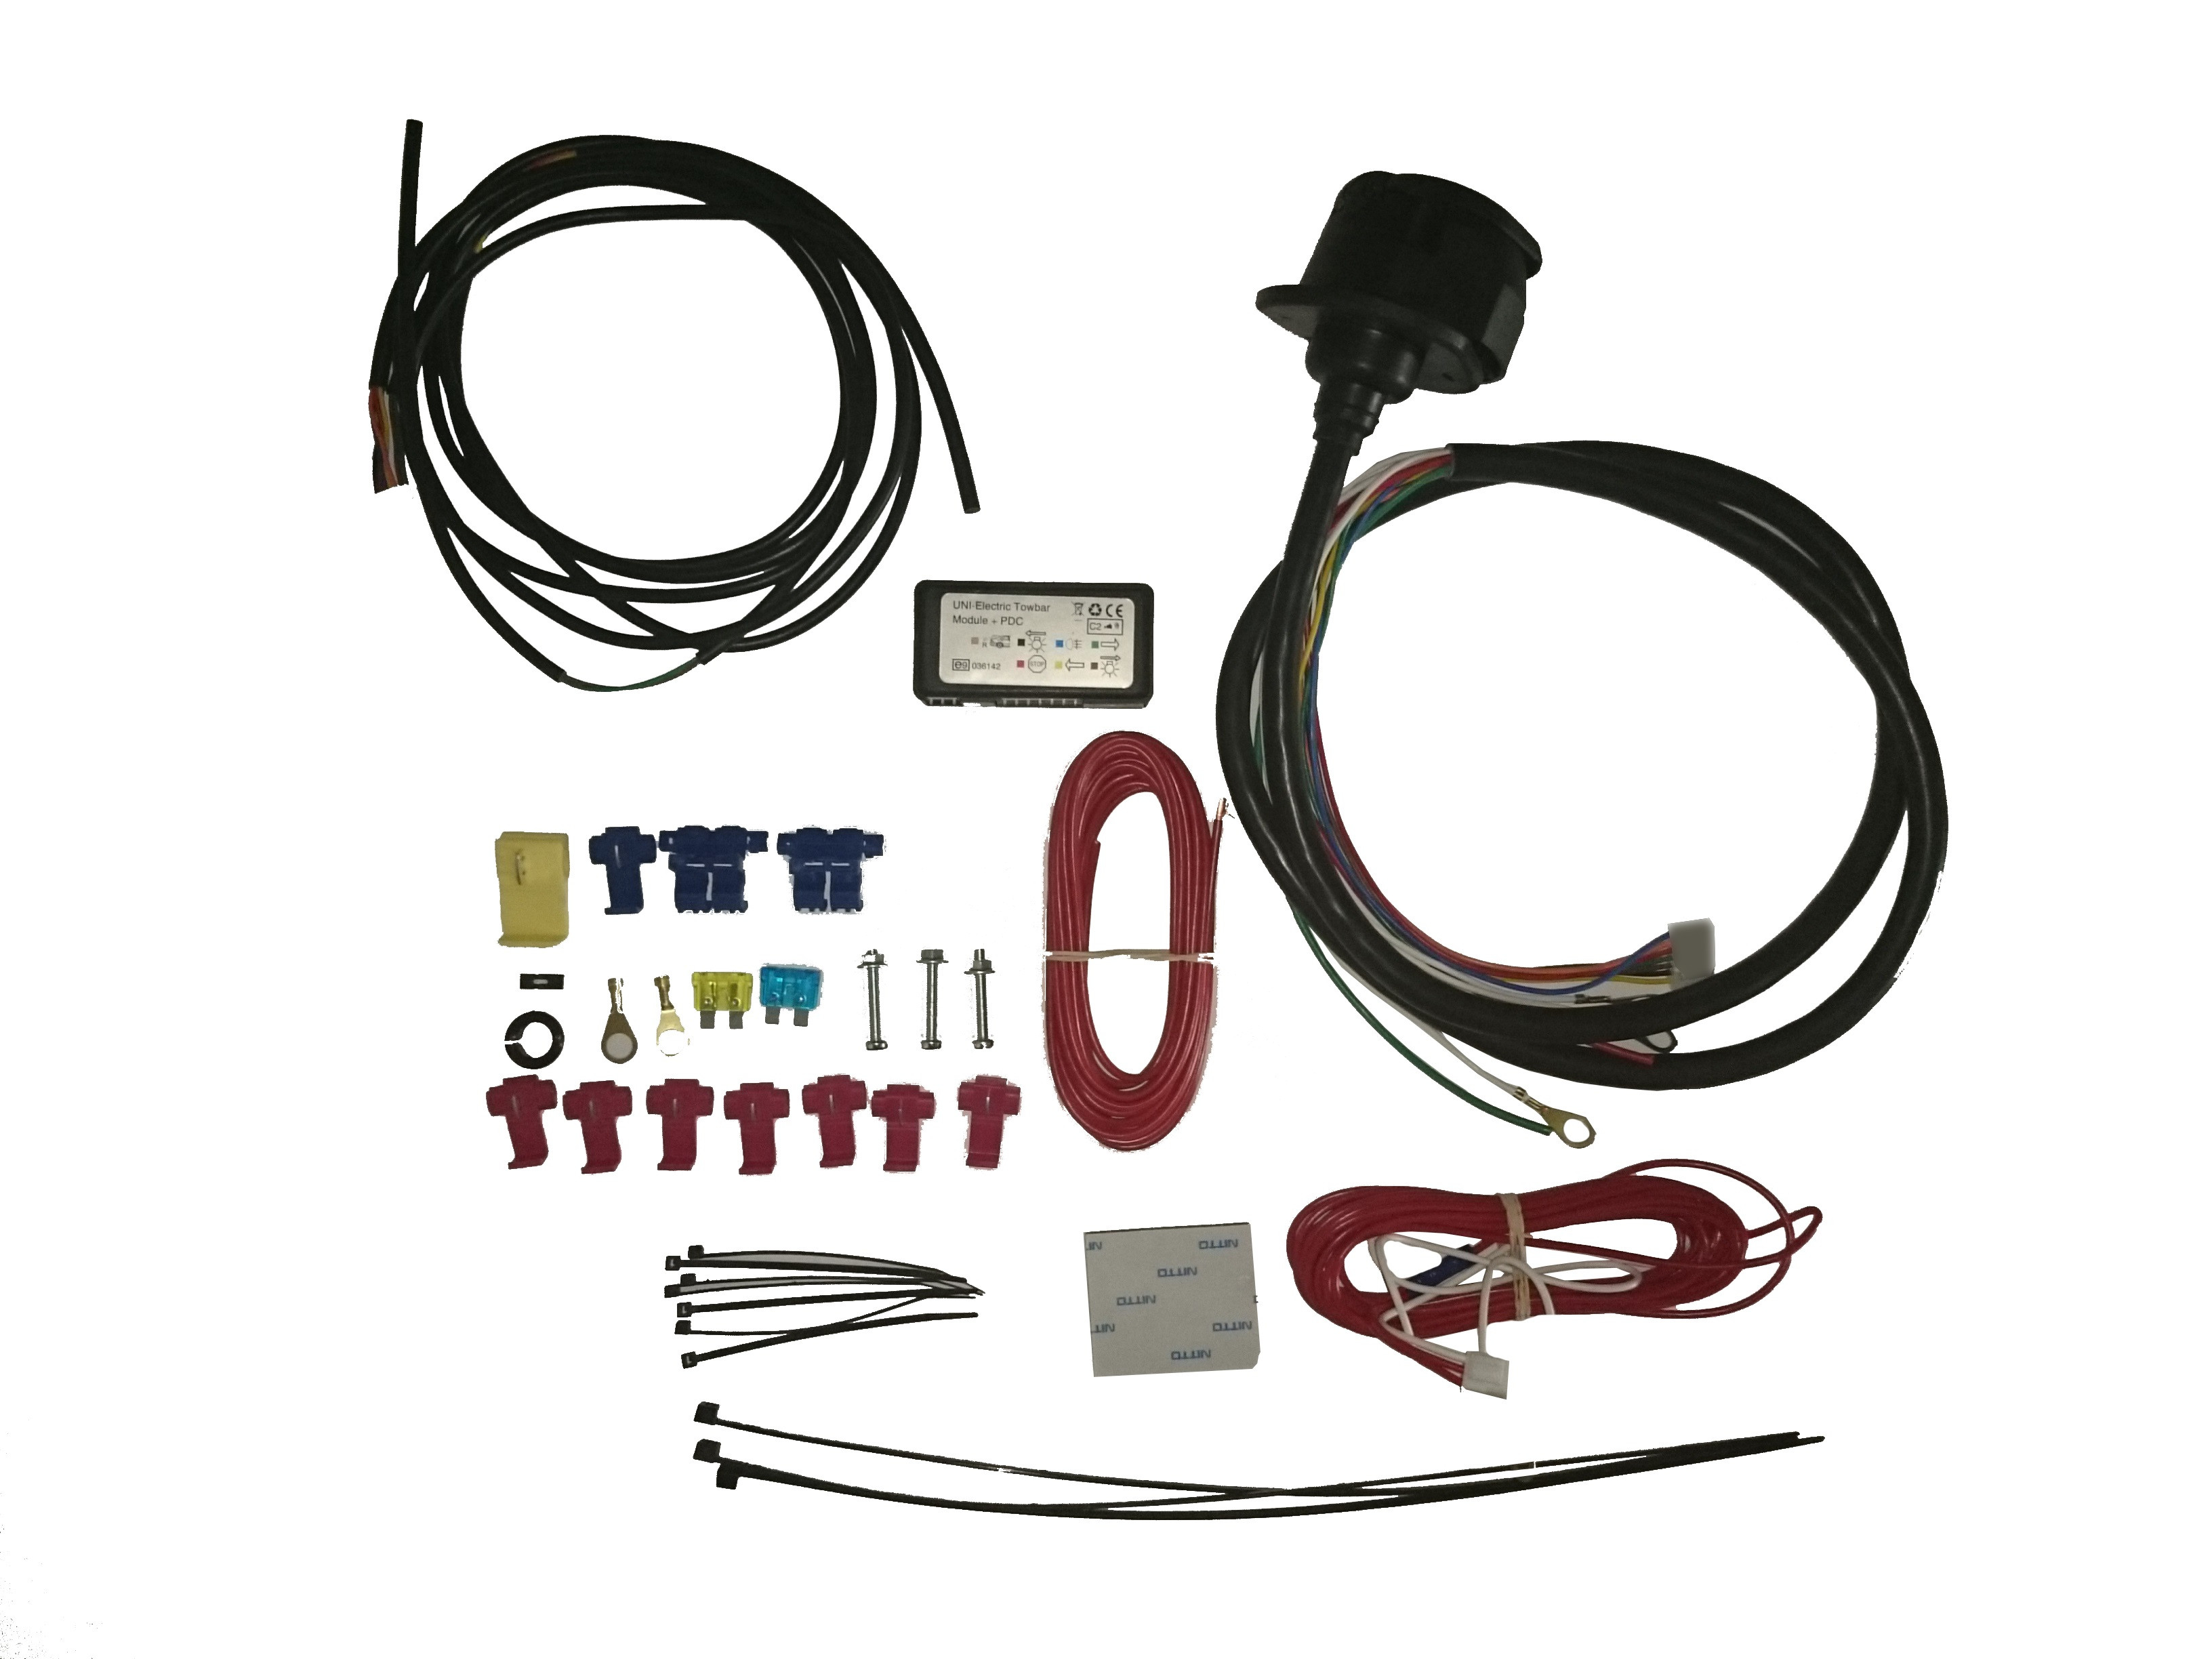 Universal Wiring Kit 13 Pin Diy Enthusiasts Diagrams Towbar Diagram 7 C2 Towing Electrics With Pdc Control Rh Towbarsbay Com Trailer Hopkins